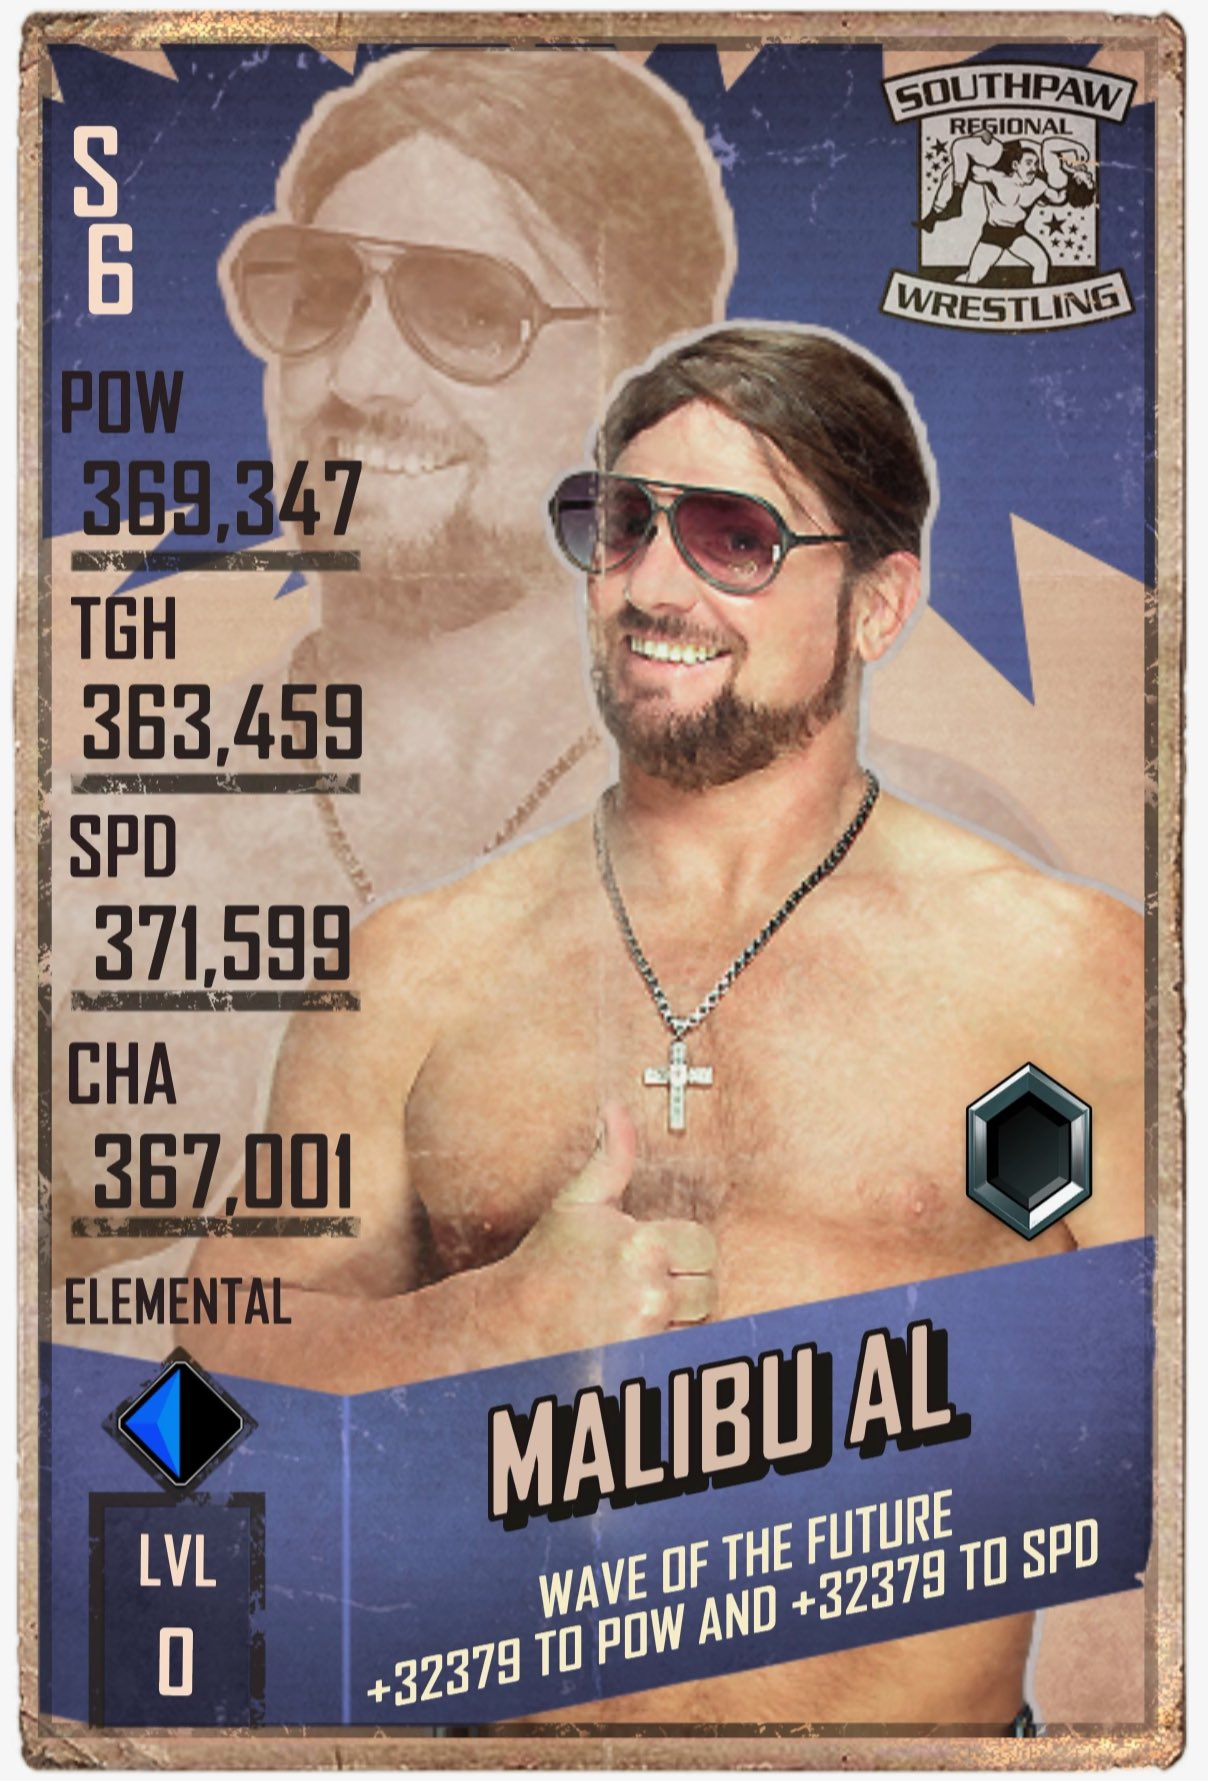 aj styles on twitter wanna talk about the future i don t think so let s talk about malibu al driving his station wagon straight to into wwesupercard beep beep watch that backseat ad aj styles on twitter wanna talk about